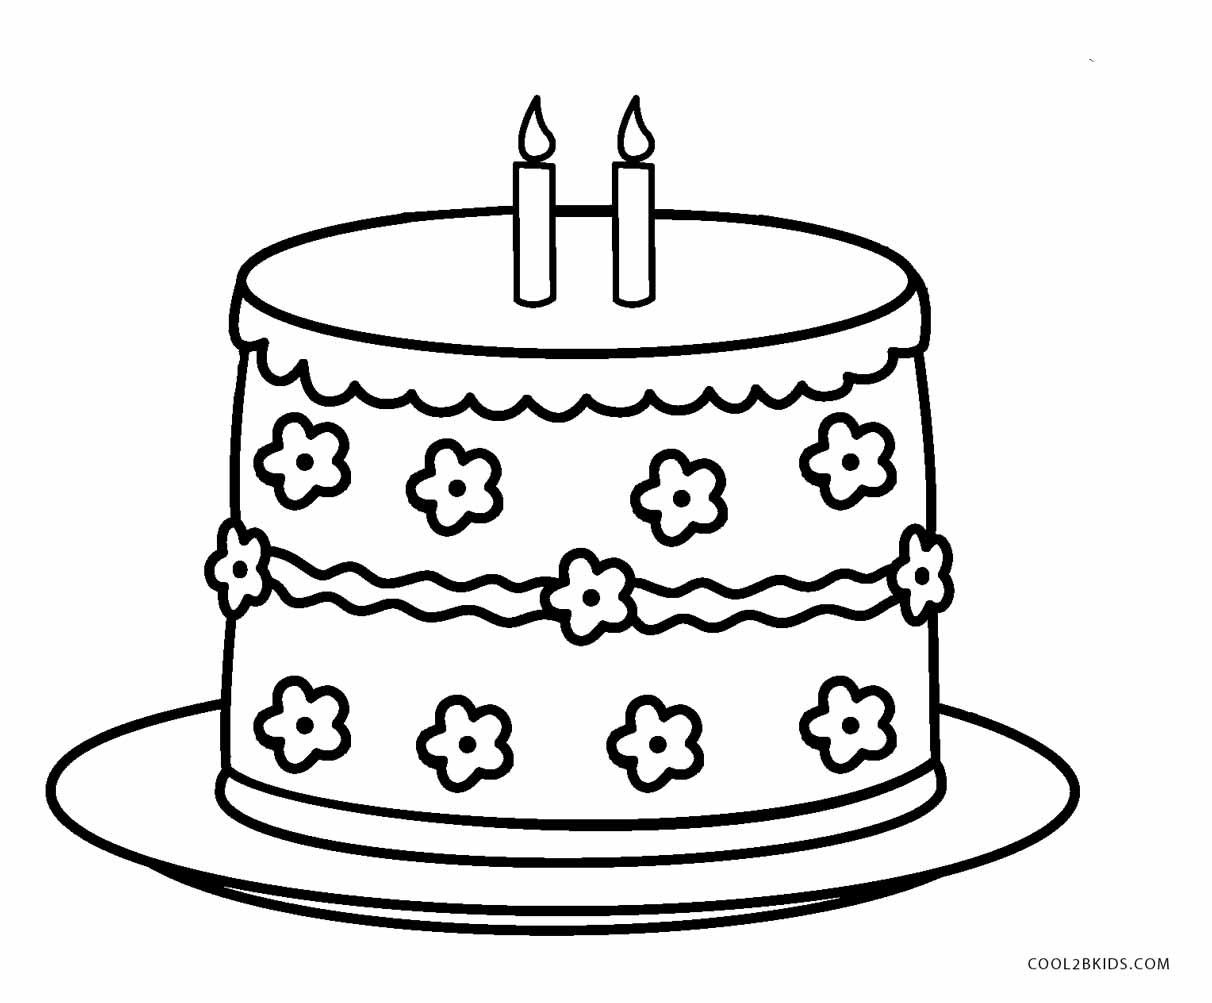 Free Printable Birthday Cake Coloring Pages For Kids | Cool2bKids